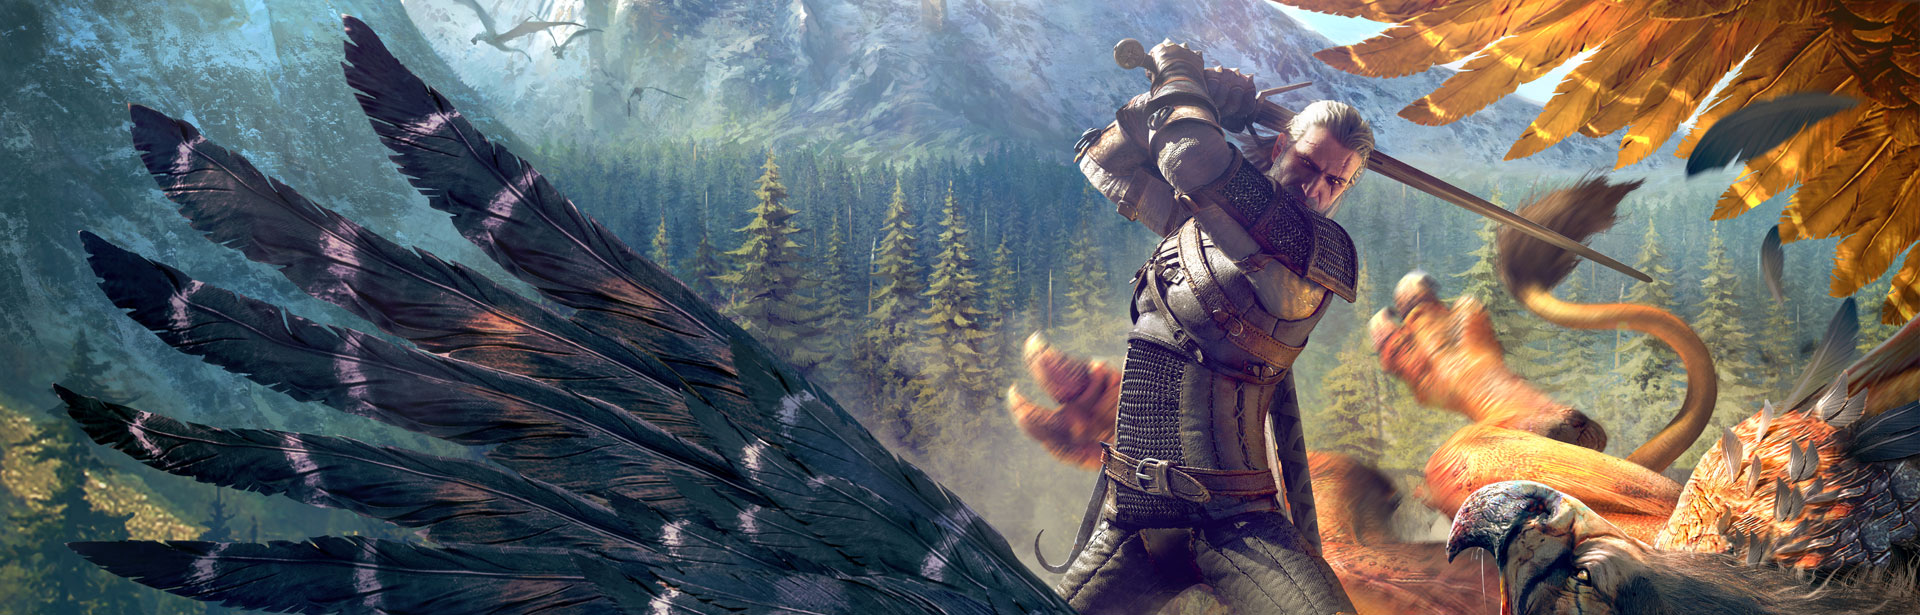 The Witcher 3: Wild Hunt Game Guide header